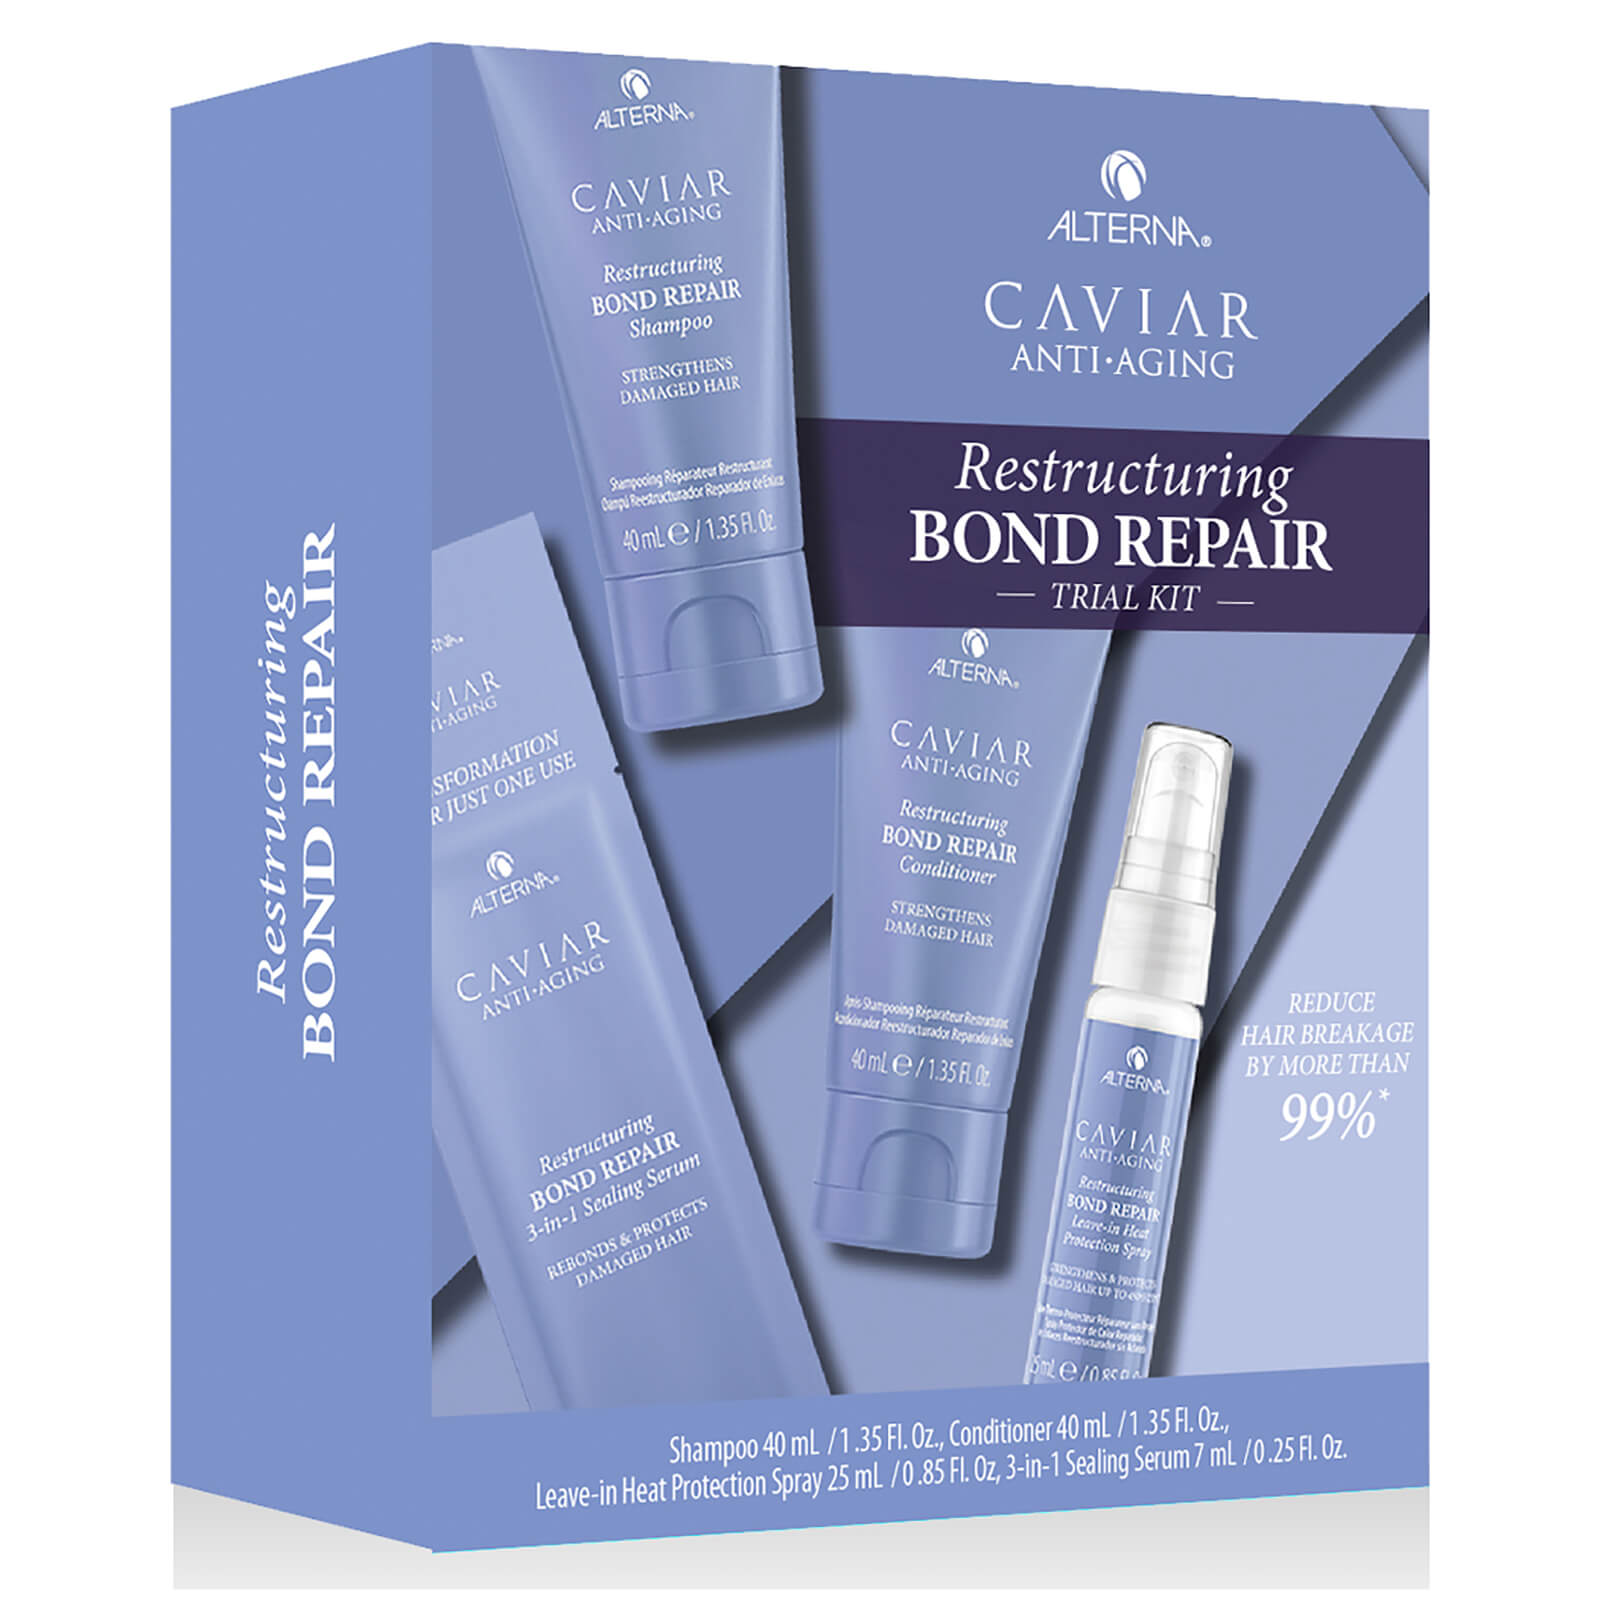 Alterna Caviar Restructuring Bond Repair Trial Kit